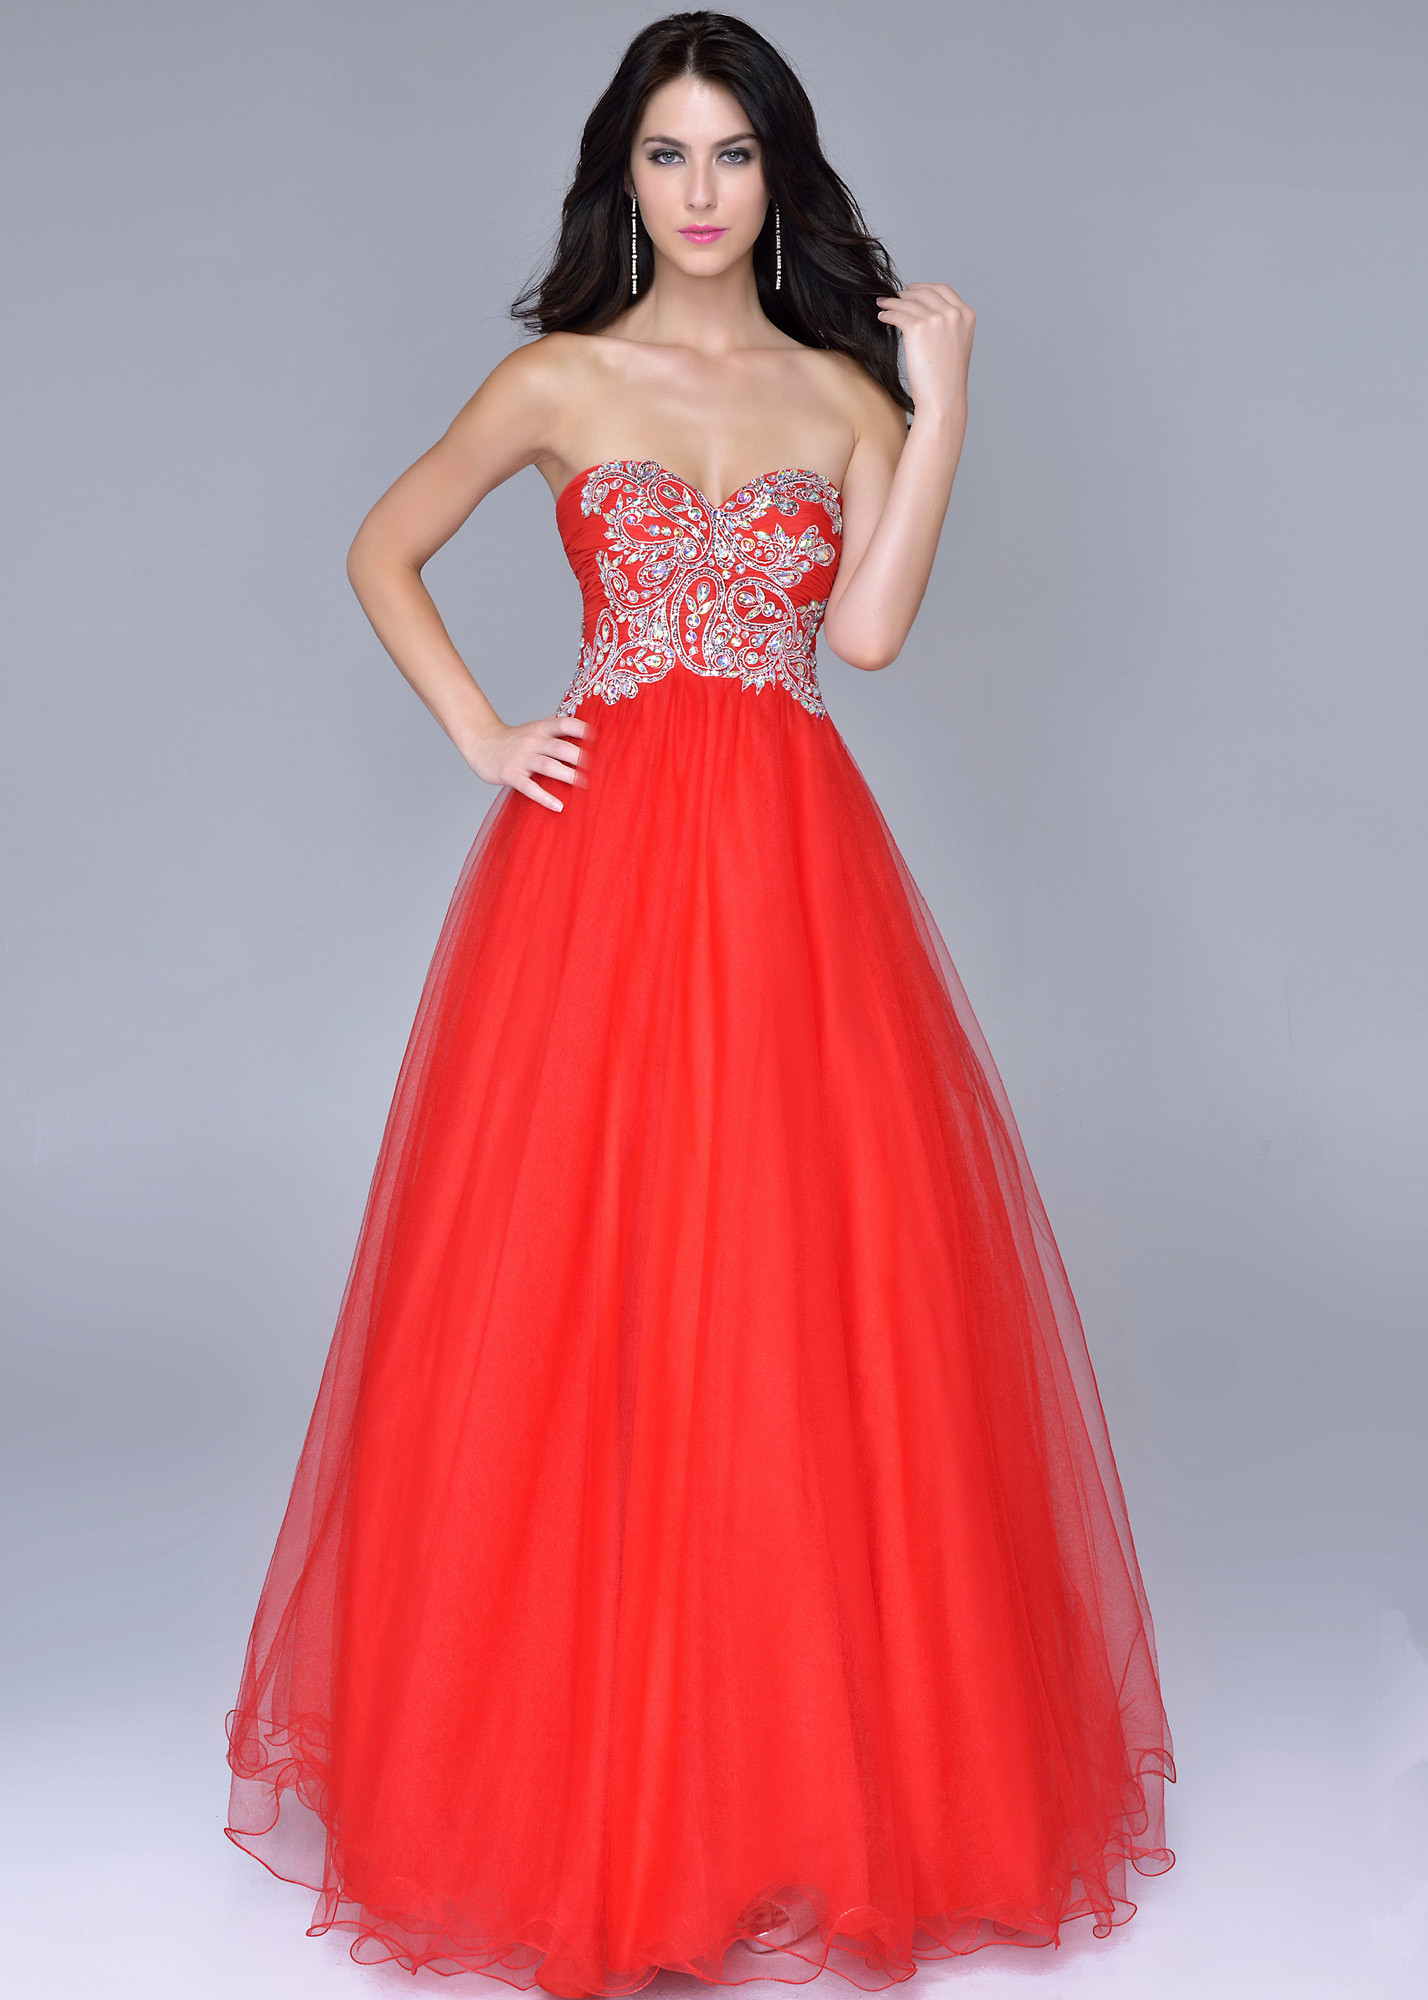 Red Ball Gown Prom Dresses - Plus Size Prom Dresses